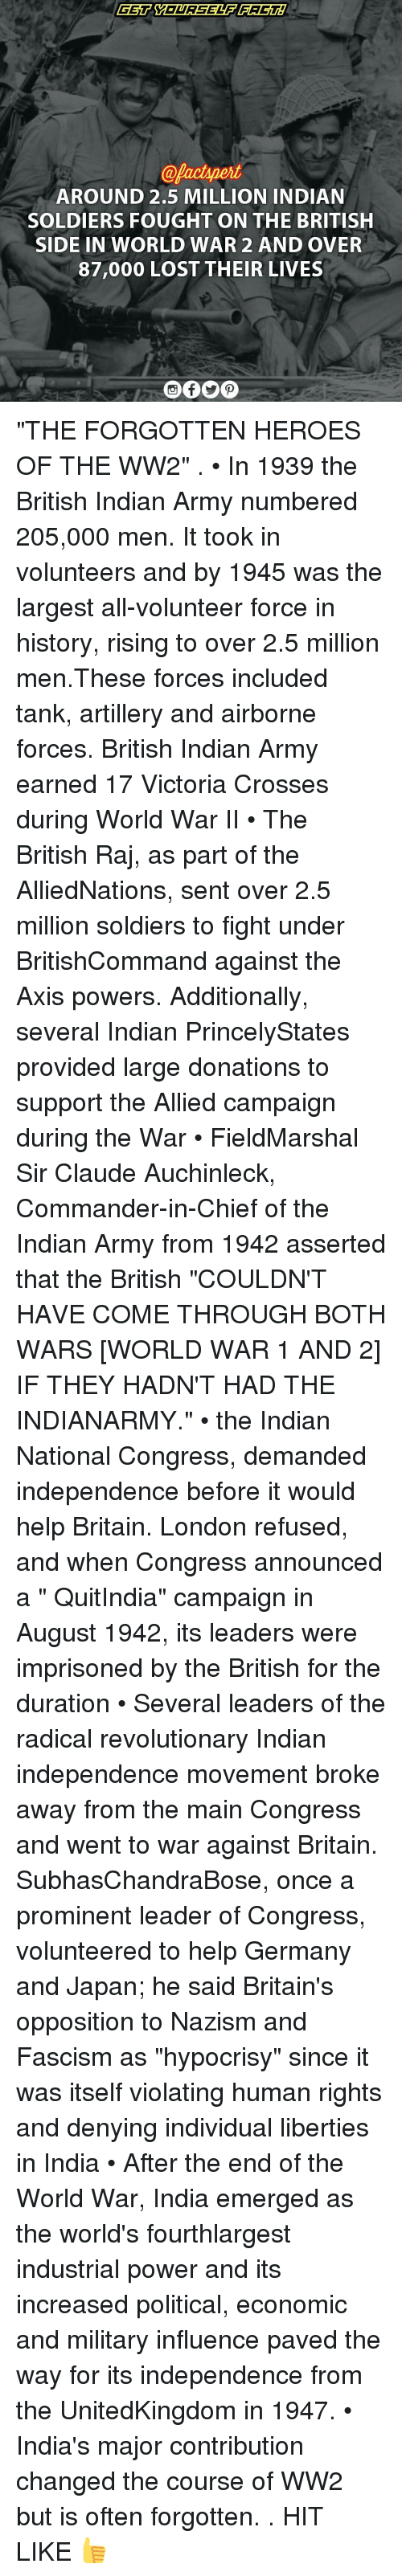 """Memes, Ally, and India: @pactspert  AROUND 2.5 MILLION INDIAN  SOLDIERS FOUGHT ON THE BRITISH  SIDE IN WORLD WAR 2 AND OVER  87,000 LOST THEIR LIVES """"THE FORGOTTEN HEROES OF THE WW2"""" . • In 1939 the British Indian Army numbered 205,000 men. It took in volunteers and by 1945 was the largest all-volunteer force in history, rising to over 2.5 million men.These forces included tank, artillery and airborne forces. British Indian Army earned 17 Victoria Crosses during World War II • The British Raj, as part of the AlliedNations, sent over 2.5 million soldiers to fight under BritishCommand against the Axis powers. Additionally, several Indian PrincelyStates provided large donations to support the Allied campaign during the War • FieldMarshal Sir Claude Auchinleck, Commander-in-Chief of the Indian Army from 1942 asserted that the British """"COULDN'T HAVE COME THROUGH BOTH WARS [WORLD WAR 1 AND 2] IF THEY HADN'T HAD THE INDIANARMY."""" • the Indian National Congress, demanded independence before it would help Britain. London refused, and when Congress announced a """" QuitIndia"""" campaign in August 1942, its leaders were imprisoned by the British for the duration • Several leaders of the radical revolutionary Indian independence movement broke away from the main Congress and went to war against Britain. SubhasChandraBose, once a prominent leader of Congress, volunteered to help Germany and Japan; he said Britain's opposition to Nazism and Fascism as """"hypocrisy"""" since it was itself violating human rights and denying individual liberties in India • After the end of the World War, India emerged as the world's fourthlargest industrial power and its increased political, economic and military influence paved the way for its independence from the UnitedKingdom in 1947. • India's major contribution changed the course of WW2 but is often forgotten. . HIT LIKE 👍"""